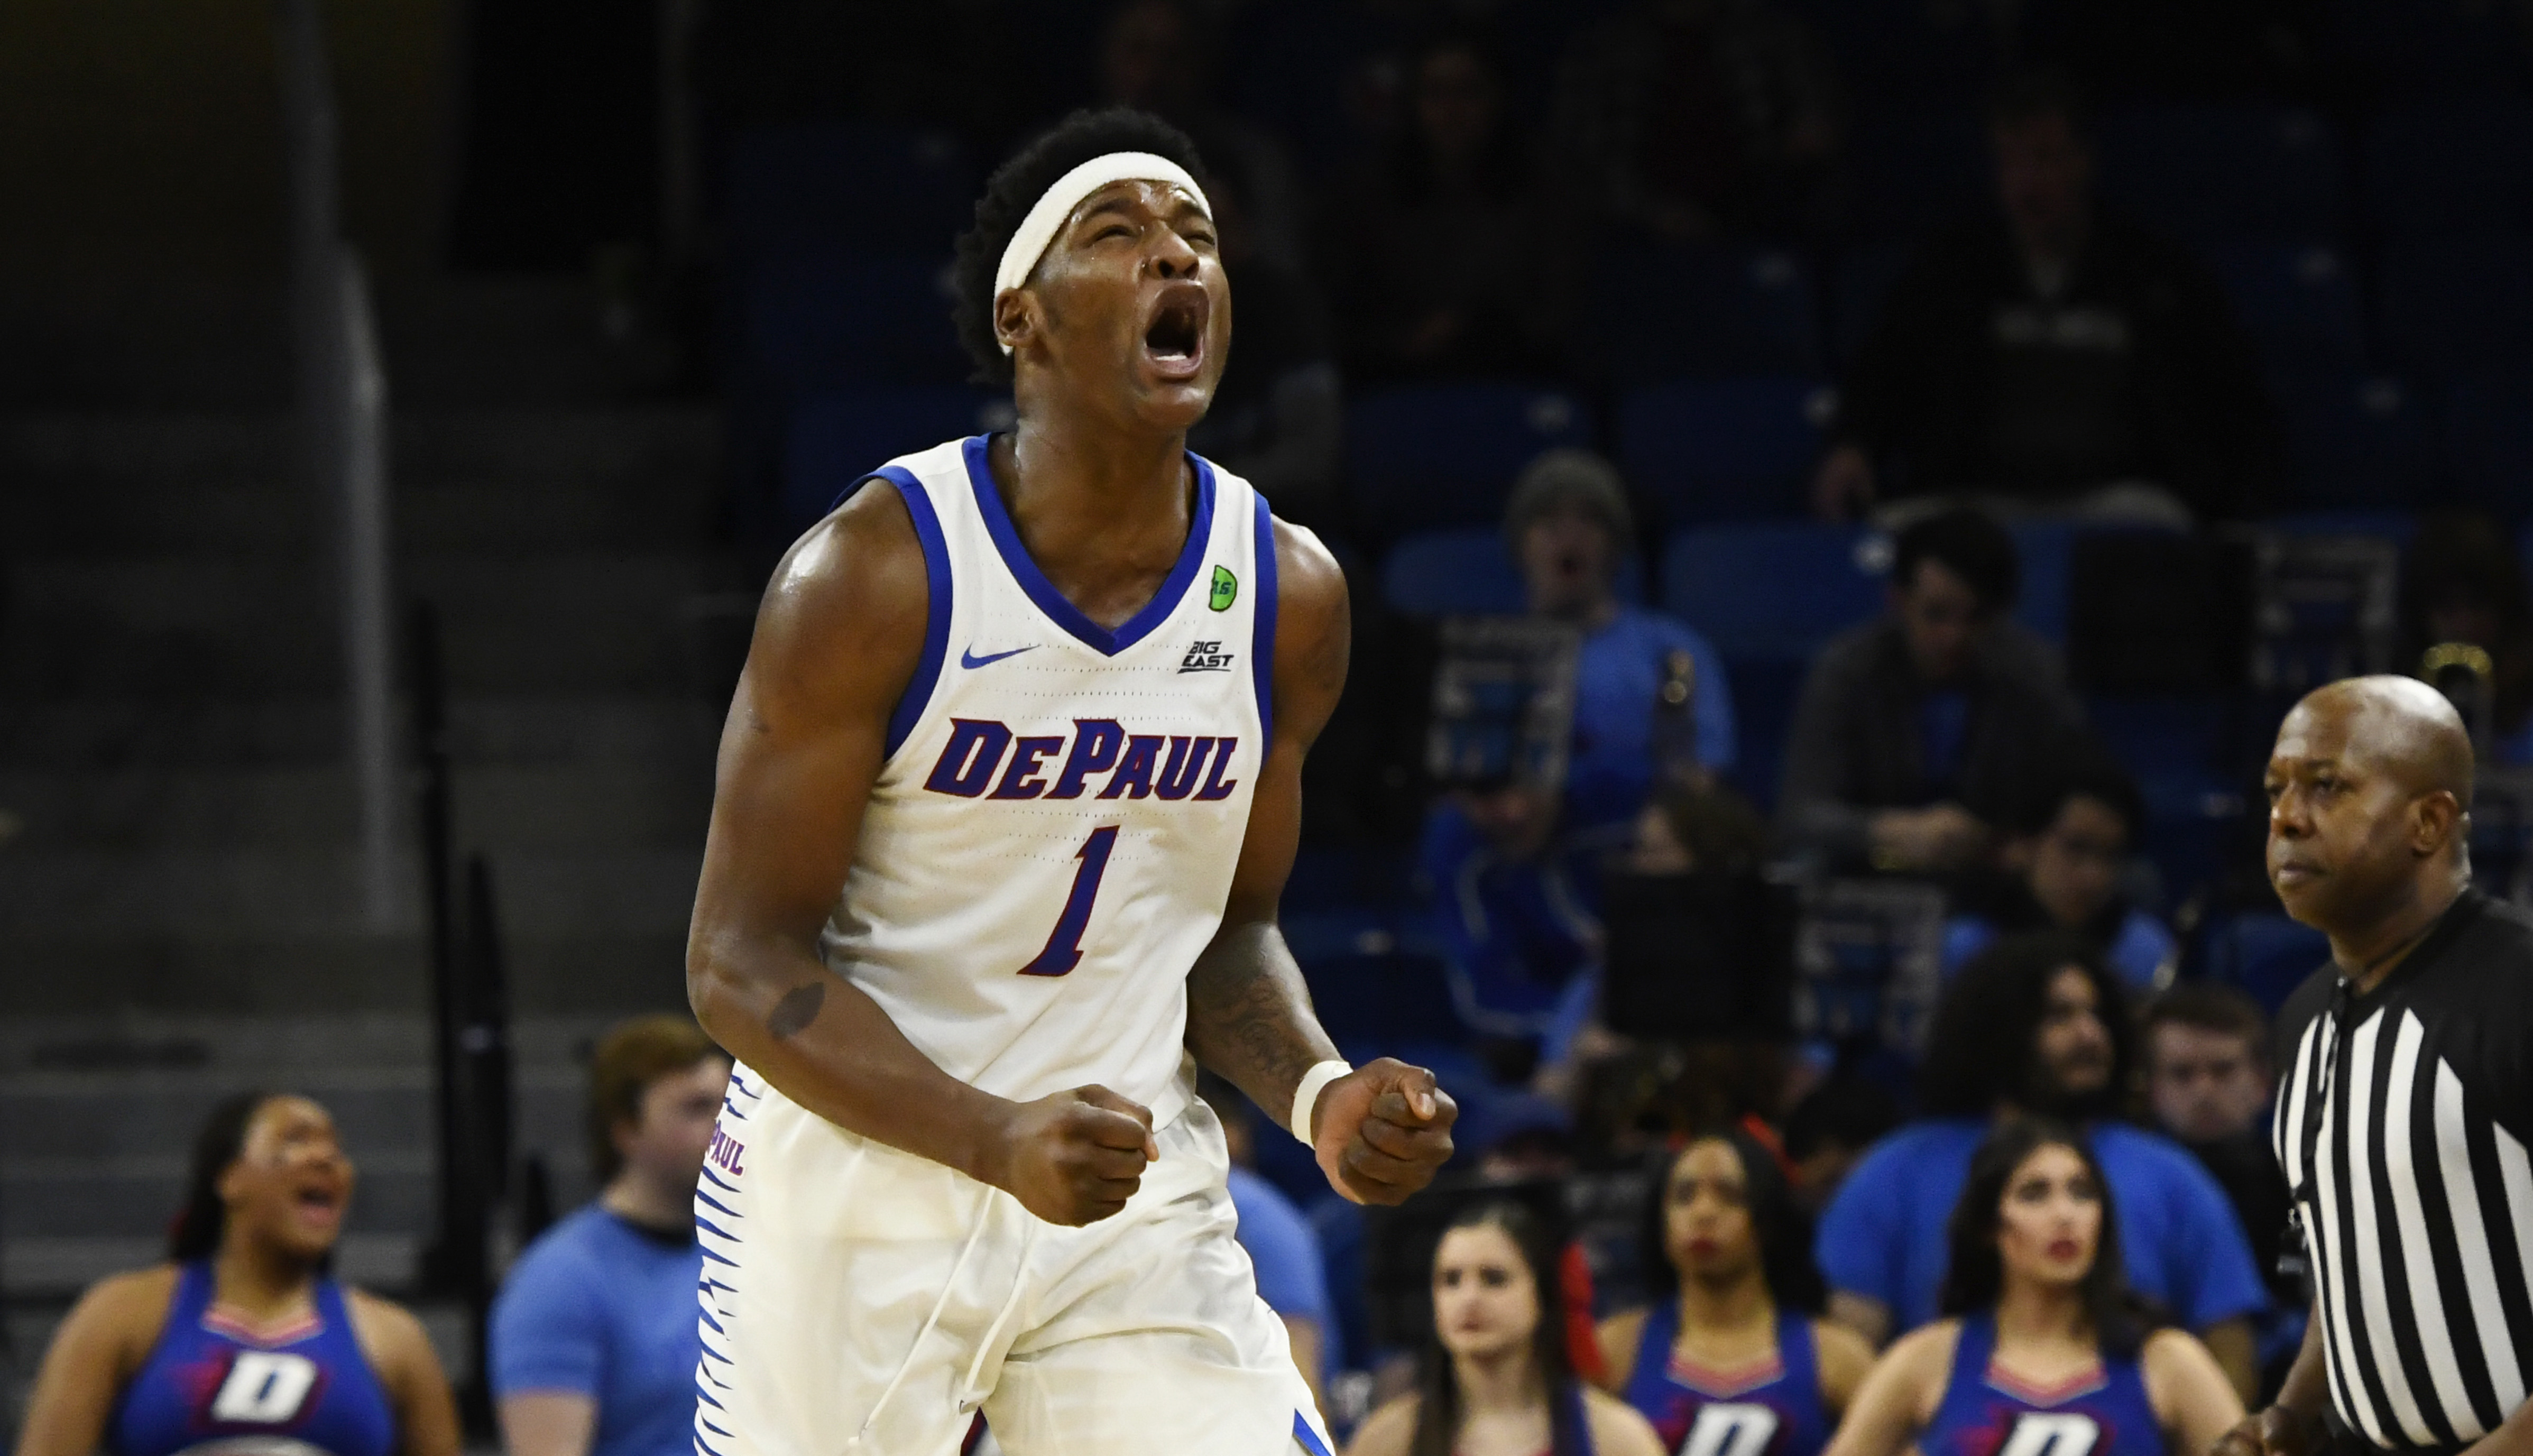 Mar 3, 2020; Chicago, Illinois, USA; DePaul Blue Demons forward Romeo Weems (1) reacts after being called for a foul against Marquette Golden Eagles during the second half at Wintrust Arena. Mandatory Credit: